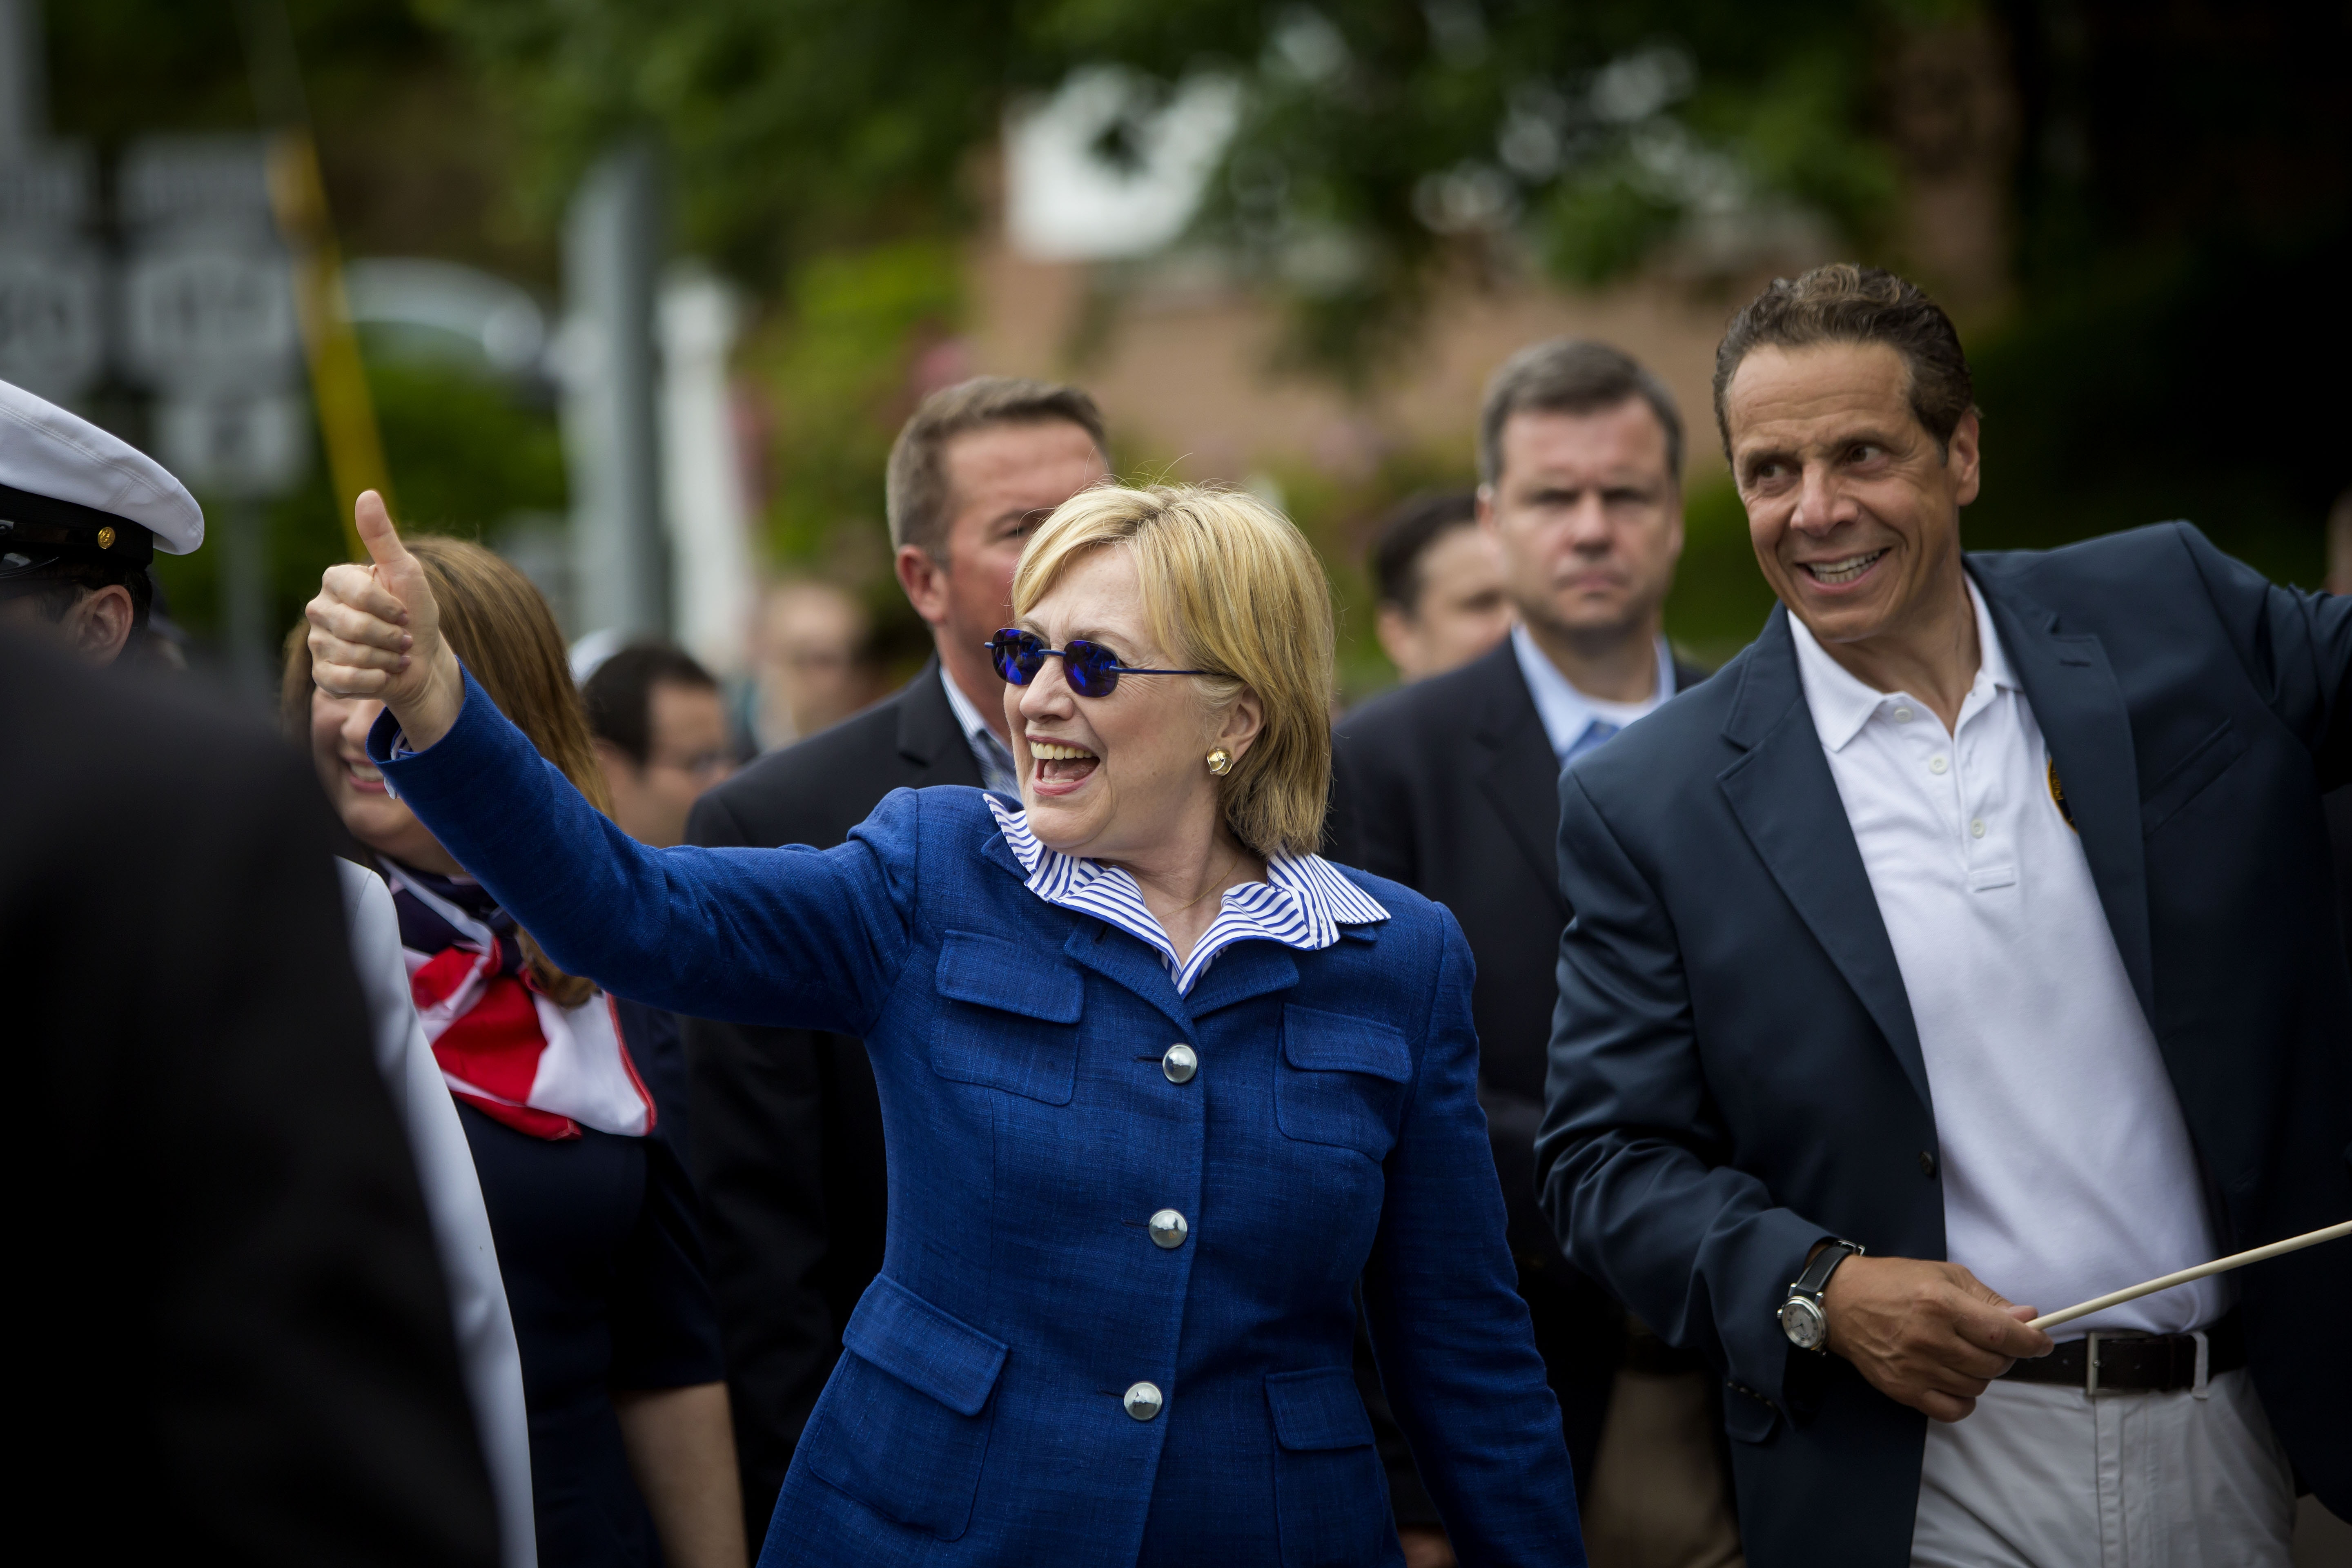 Democratic presidential candidate former Secretary of State Hillary Clinton and New York Governor Andrew M. Cuomo walk in the Memorial Day parade May 30, 2016 in Chappaqua, N.Y. (Getty Images)